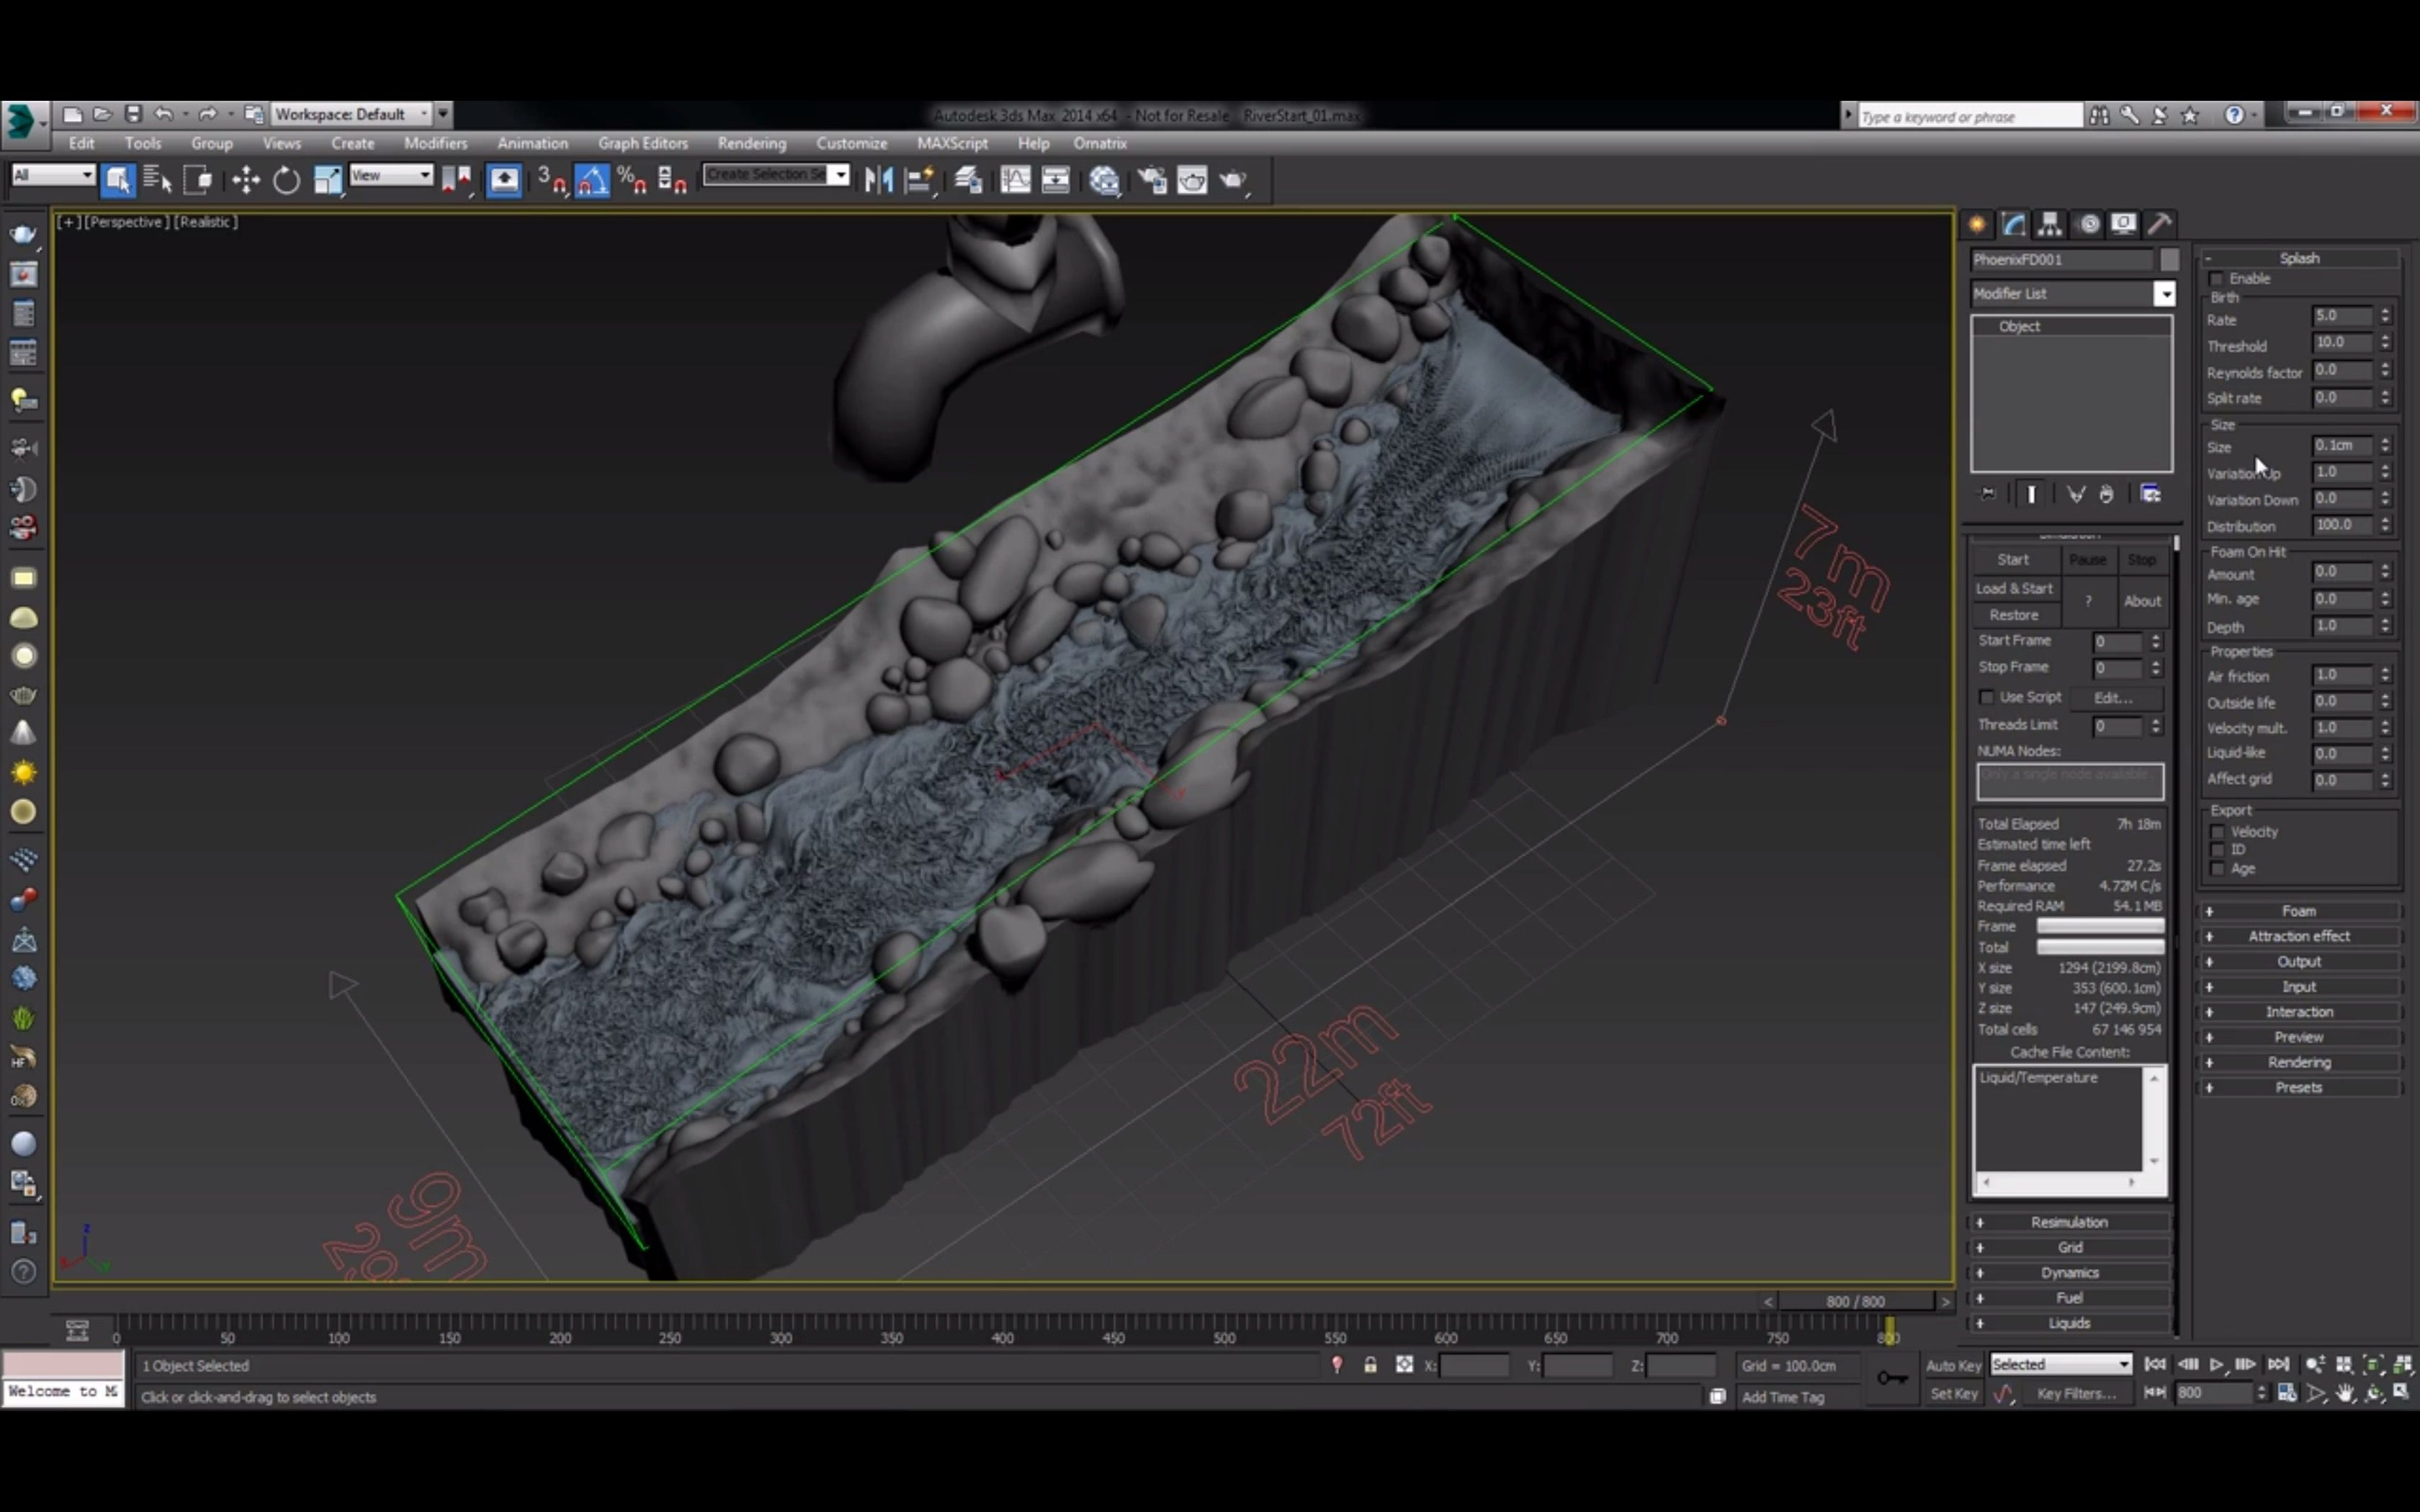 Phoenix FD River 3Ds Max Tutorial Simulation And Setup The